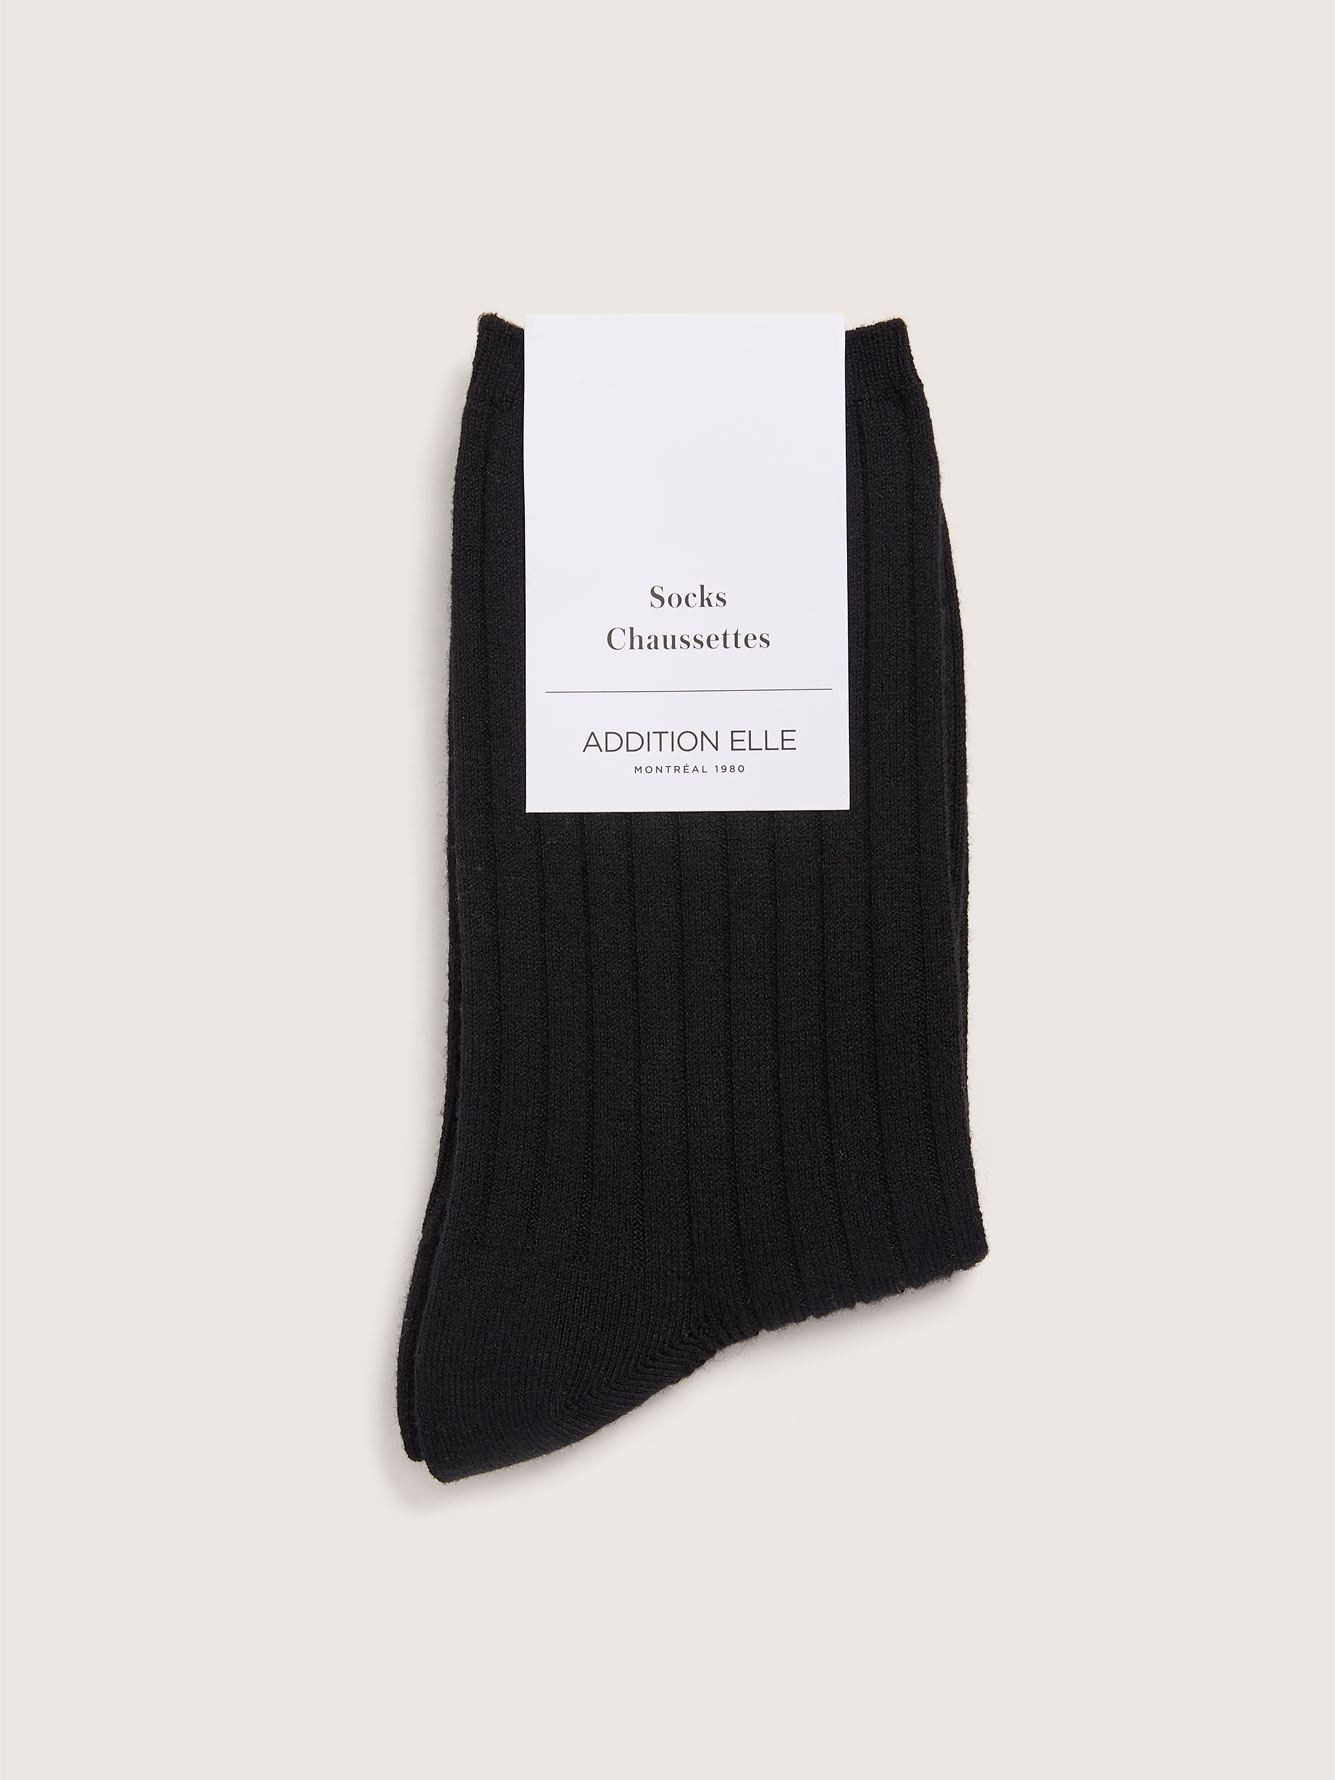 Wide Width Socks with a Touch of Cashmere - Addition Elle